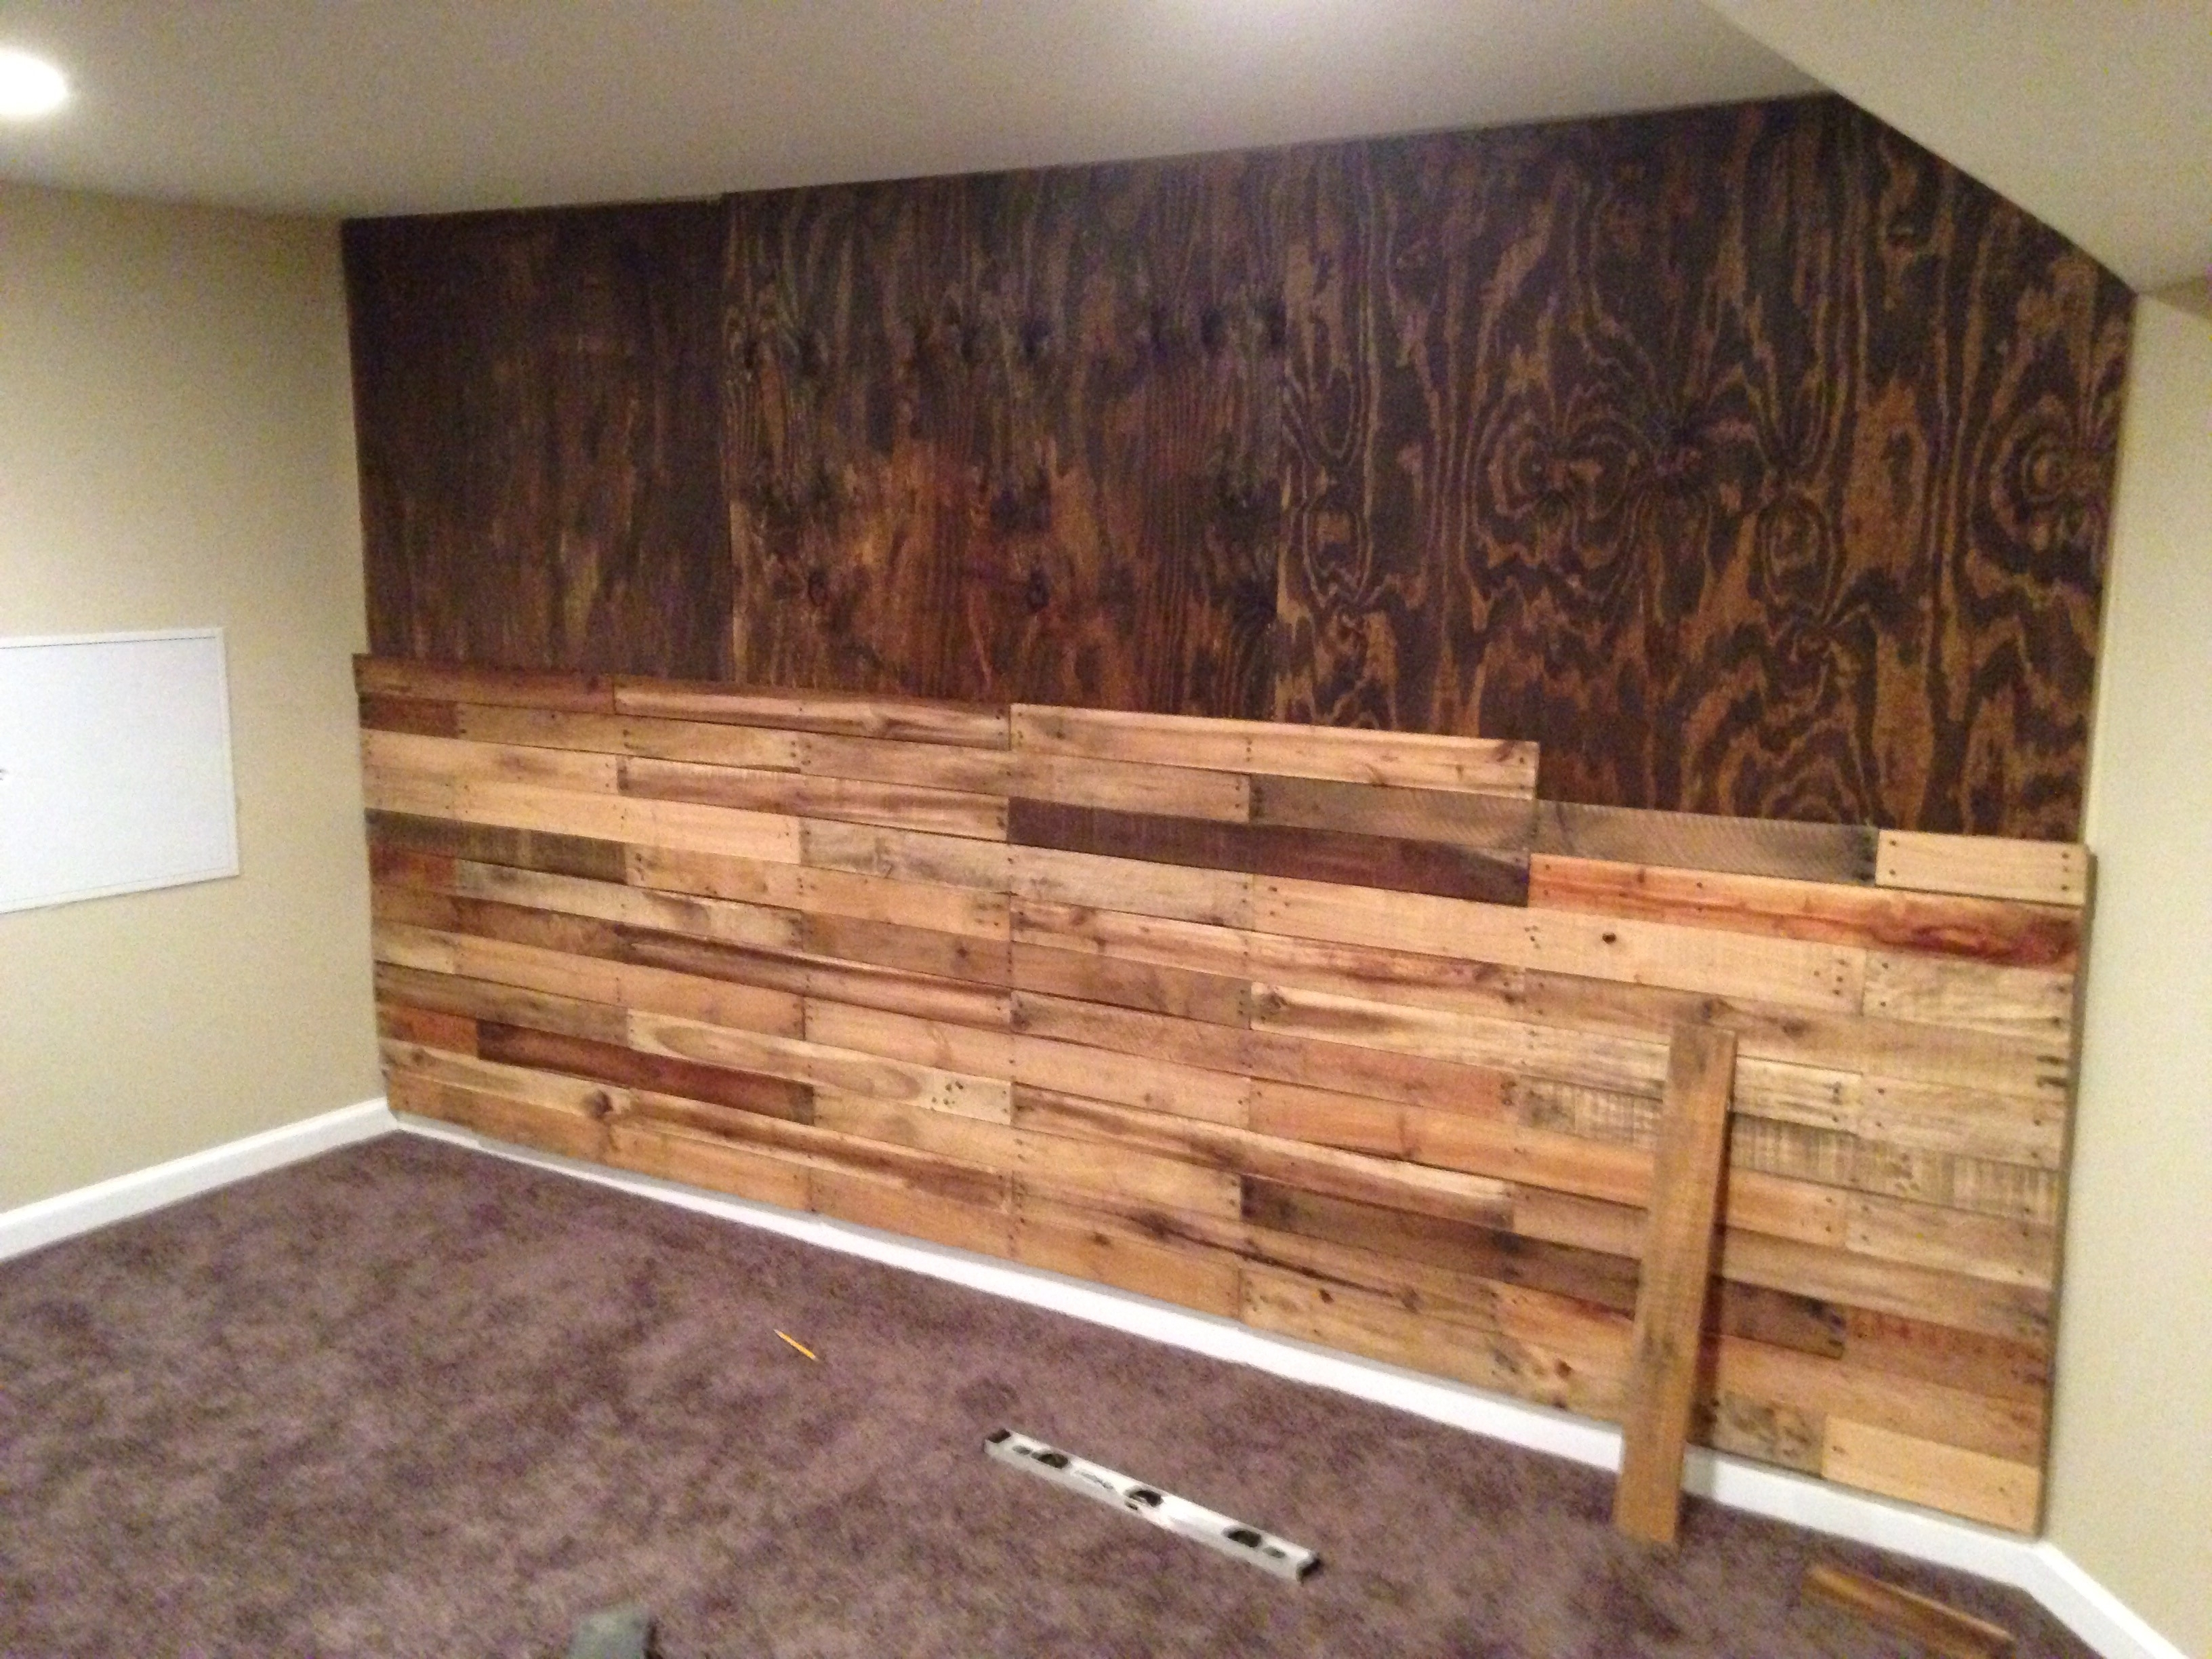 Fashionable Pallet Accent Wall! – Album On Imgur Inside Wall Accents Made From Pallets (View 8 of 15)